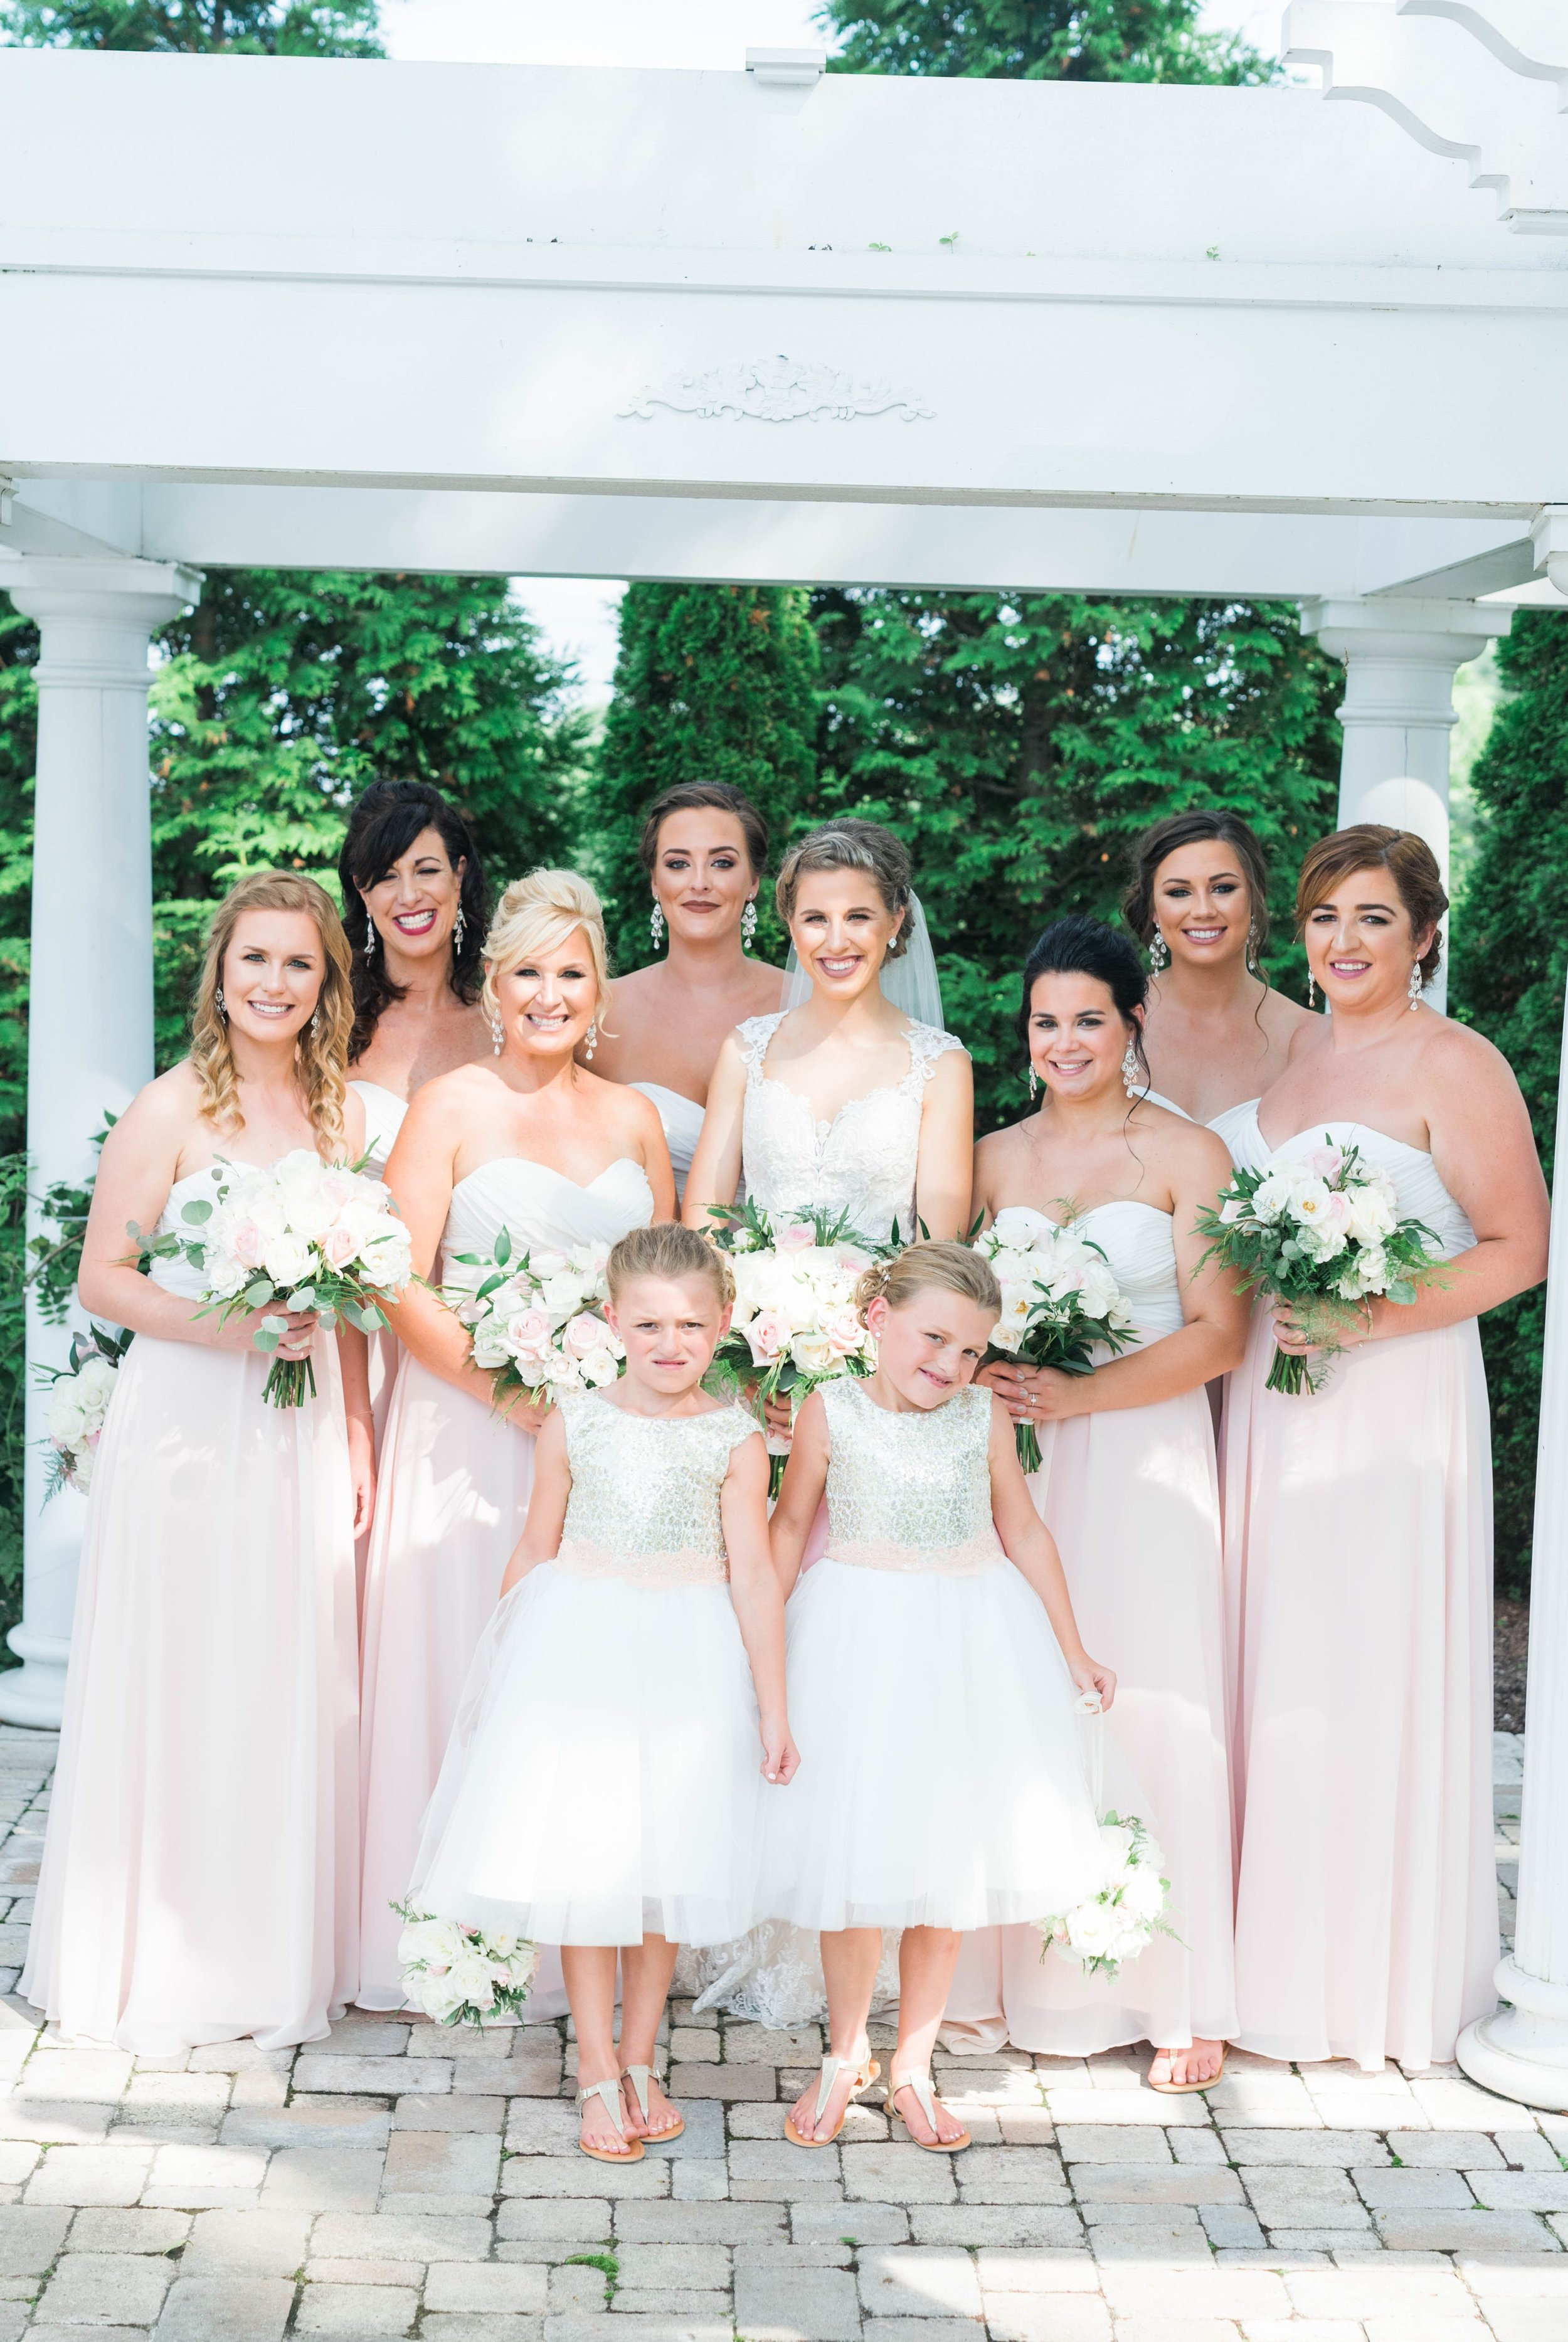 BedfordColumns_EntwinedEvents_Lynchburgwedding_VIrginiaweddingphotographer_ALlisonNIck 28.jpg